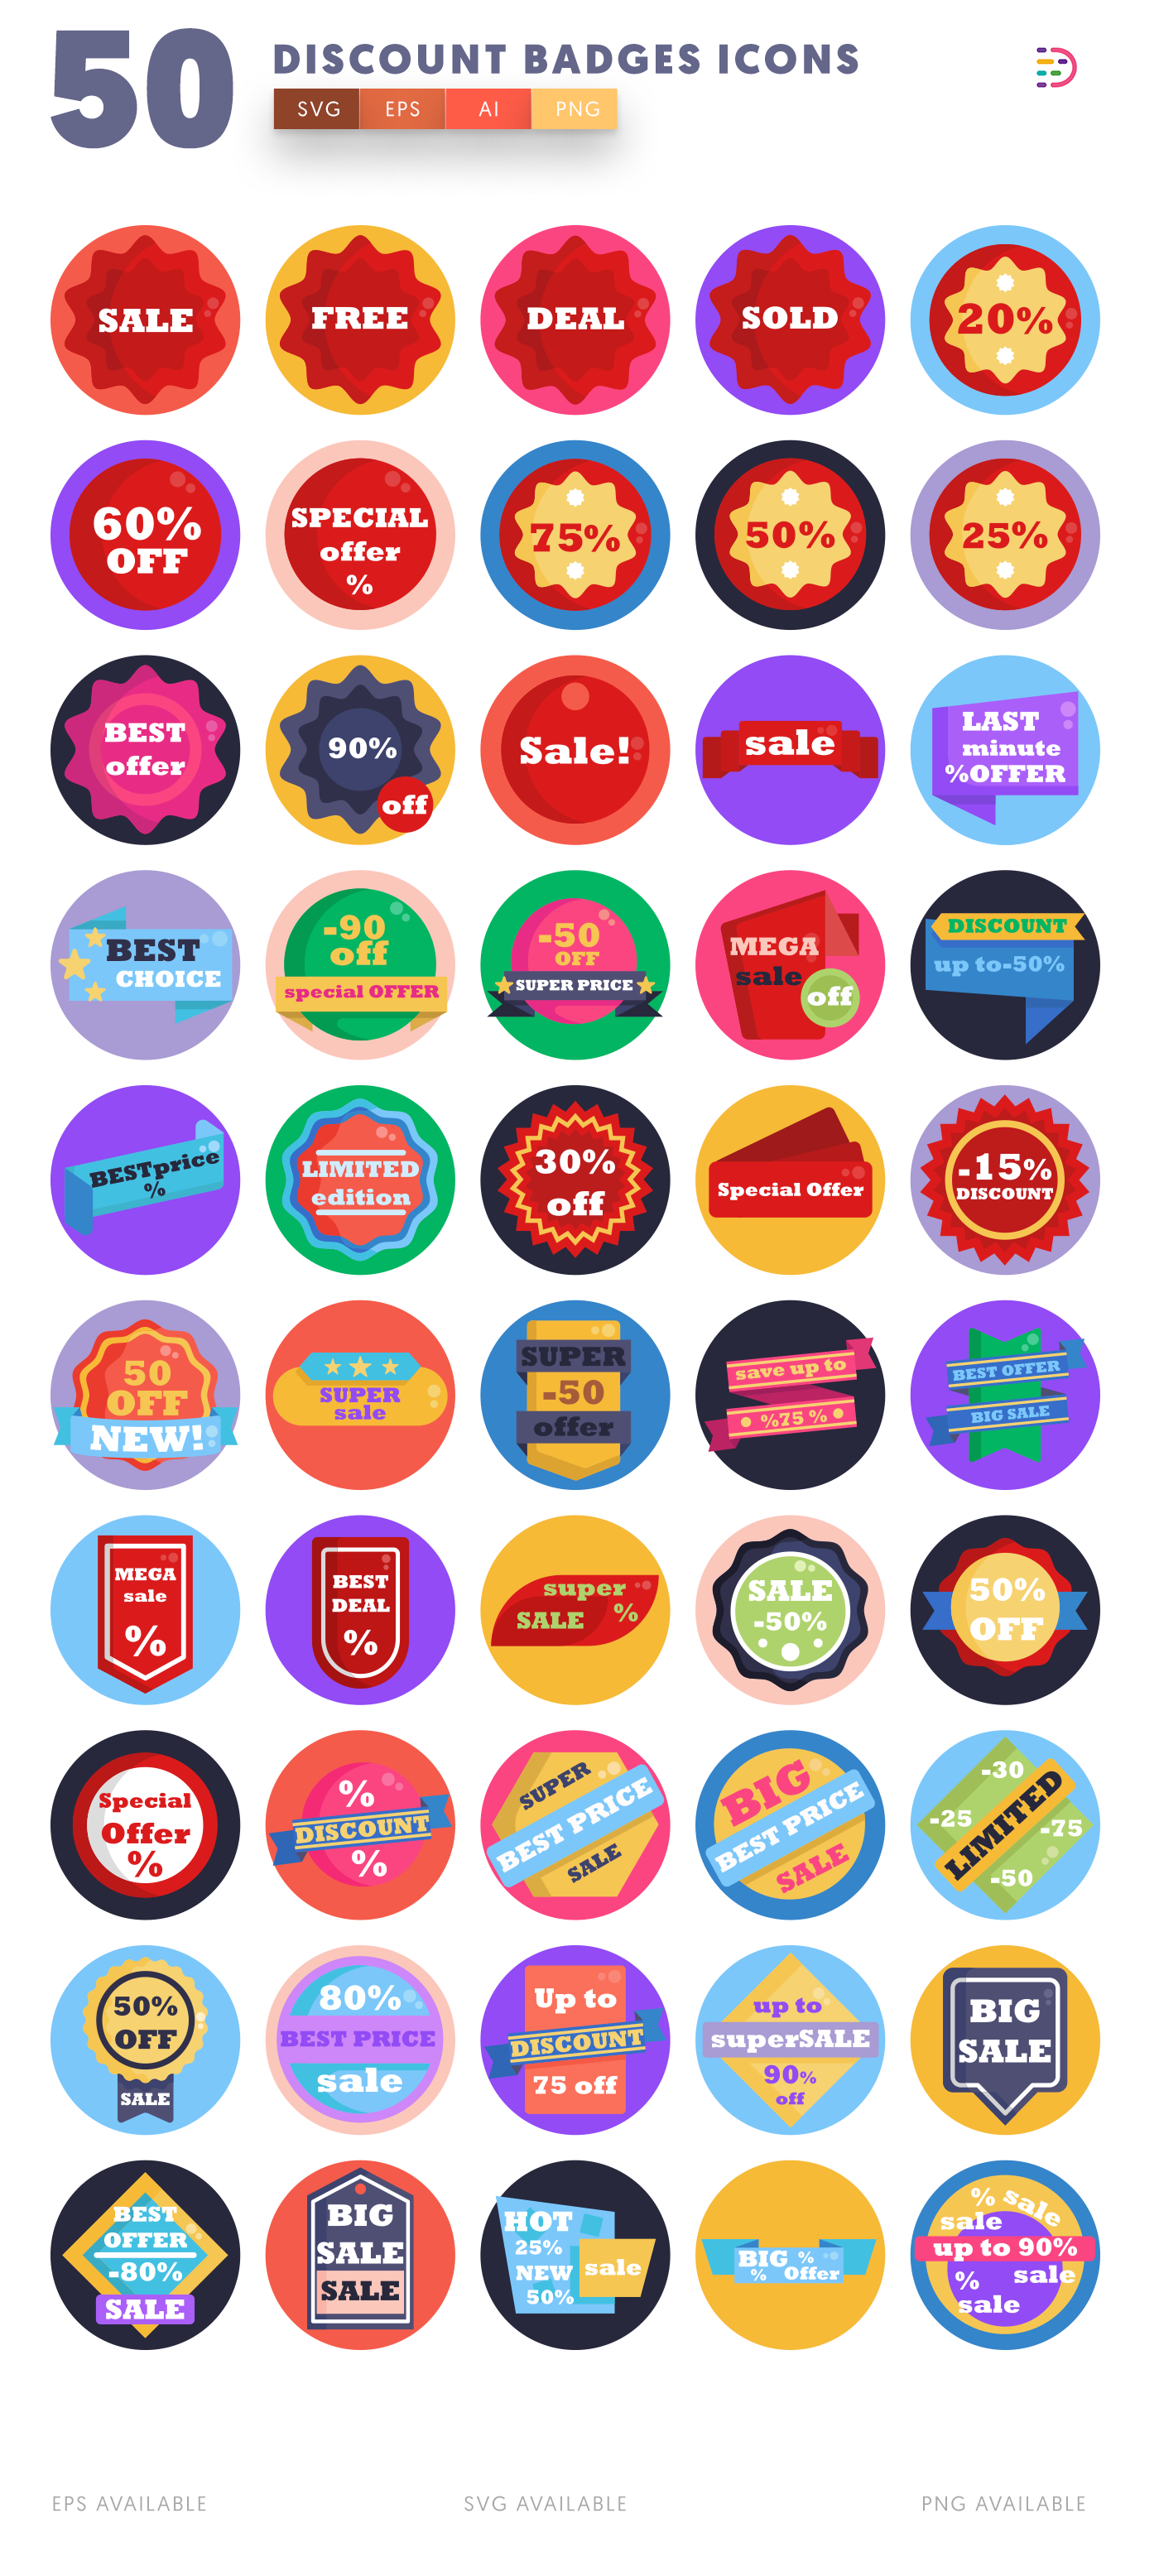 Discount Badges icon pack